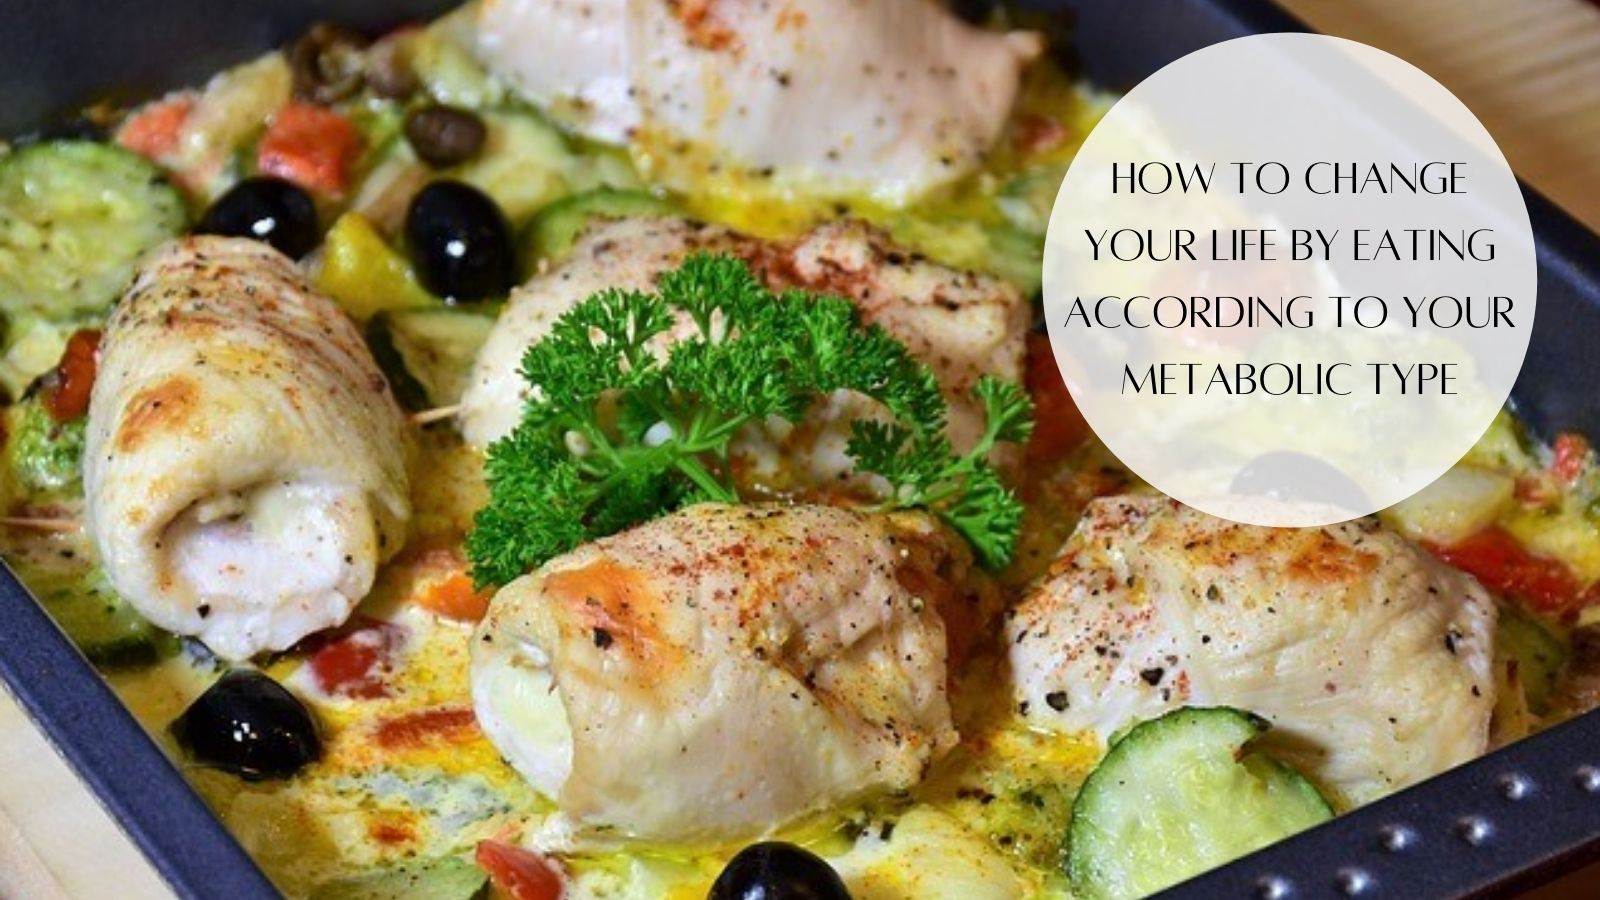 How To Change Your Life By Eating According To Your Metabolic Type - Beautiful Meal